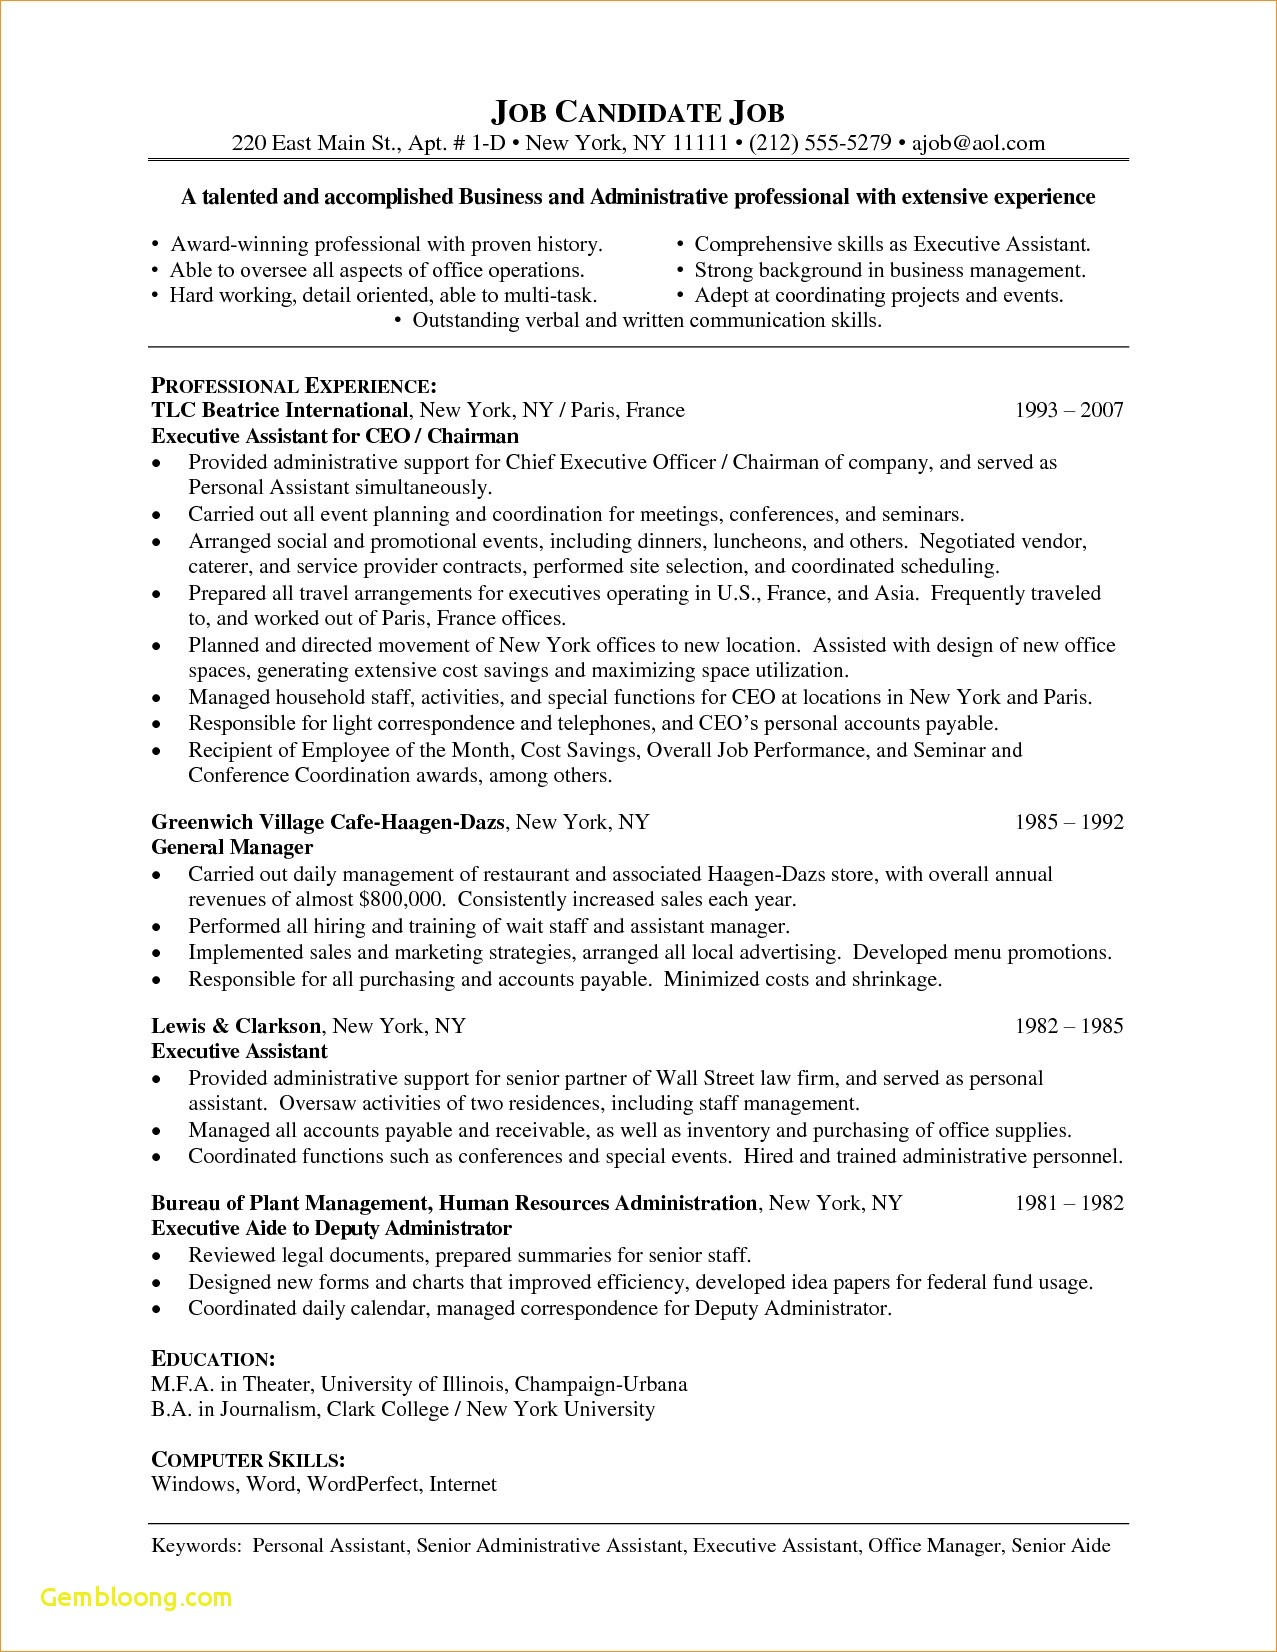 Wordperfect Resume Template - Cover Letter and Resume Template Word Download